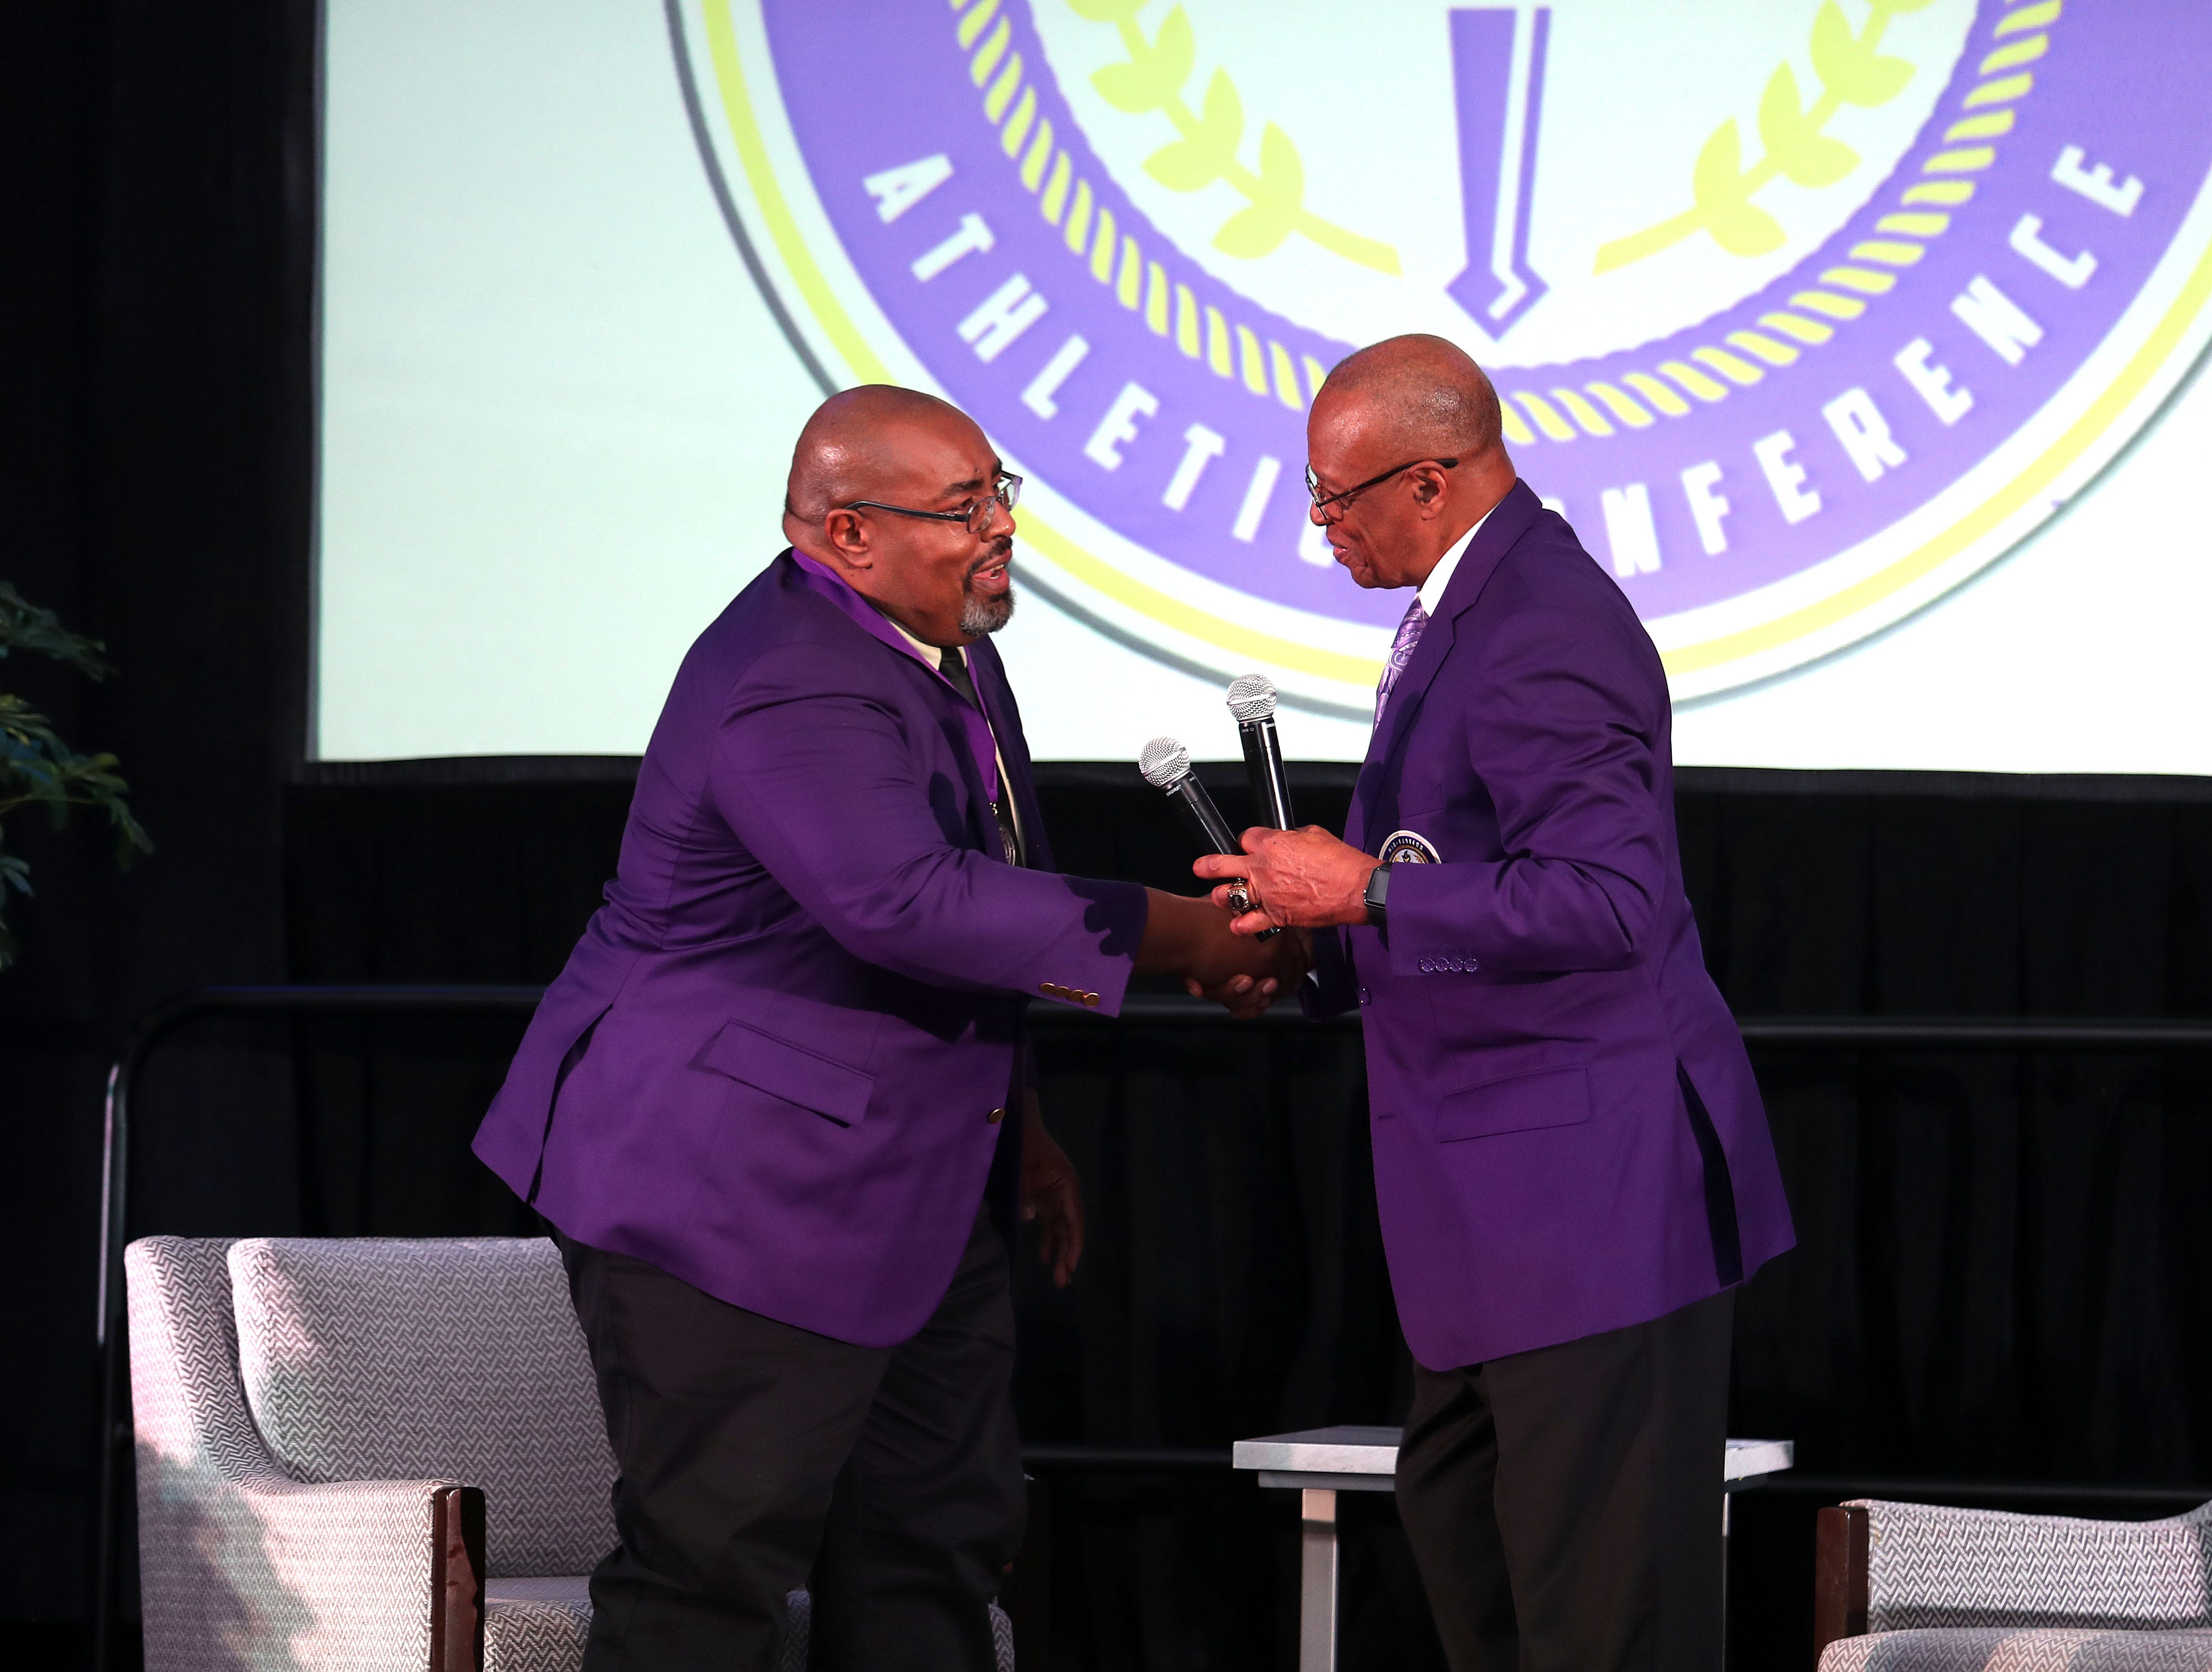 Alvin Hollins is greeted by veteran broadcaster Charlie Neal during the MEAC Hall of Fame ceremony. The event took place on Thursday, March 14, 2019 at the Sheraton Norfolk Waterside Hotel in Norfolk, Virginia.